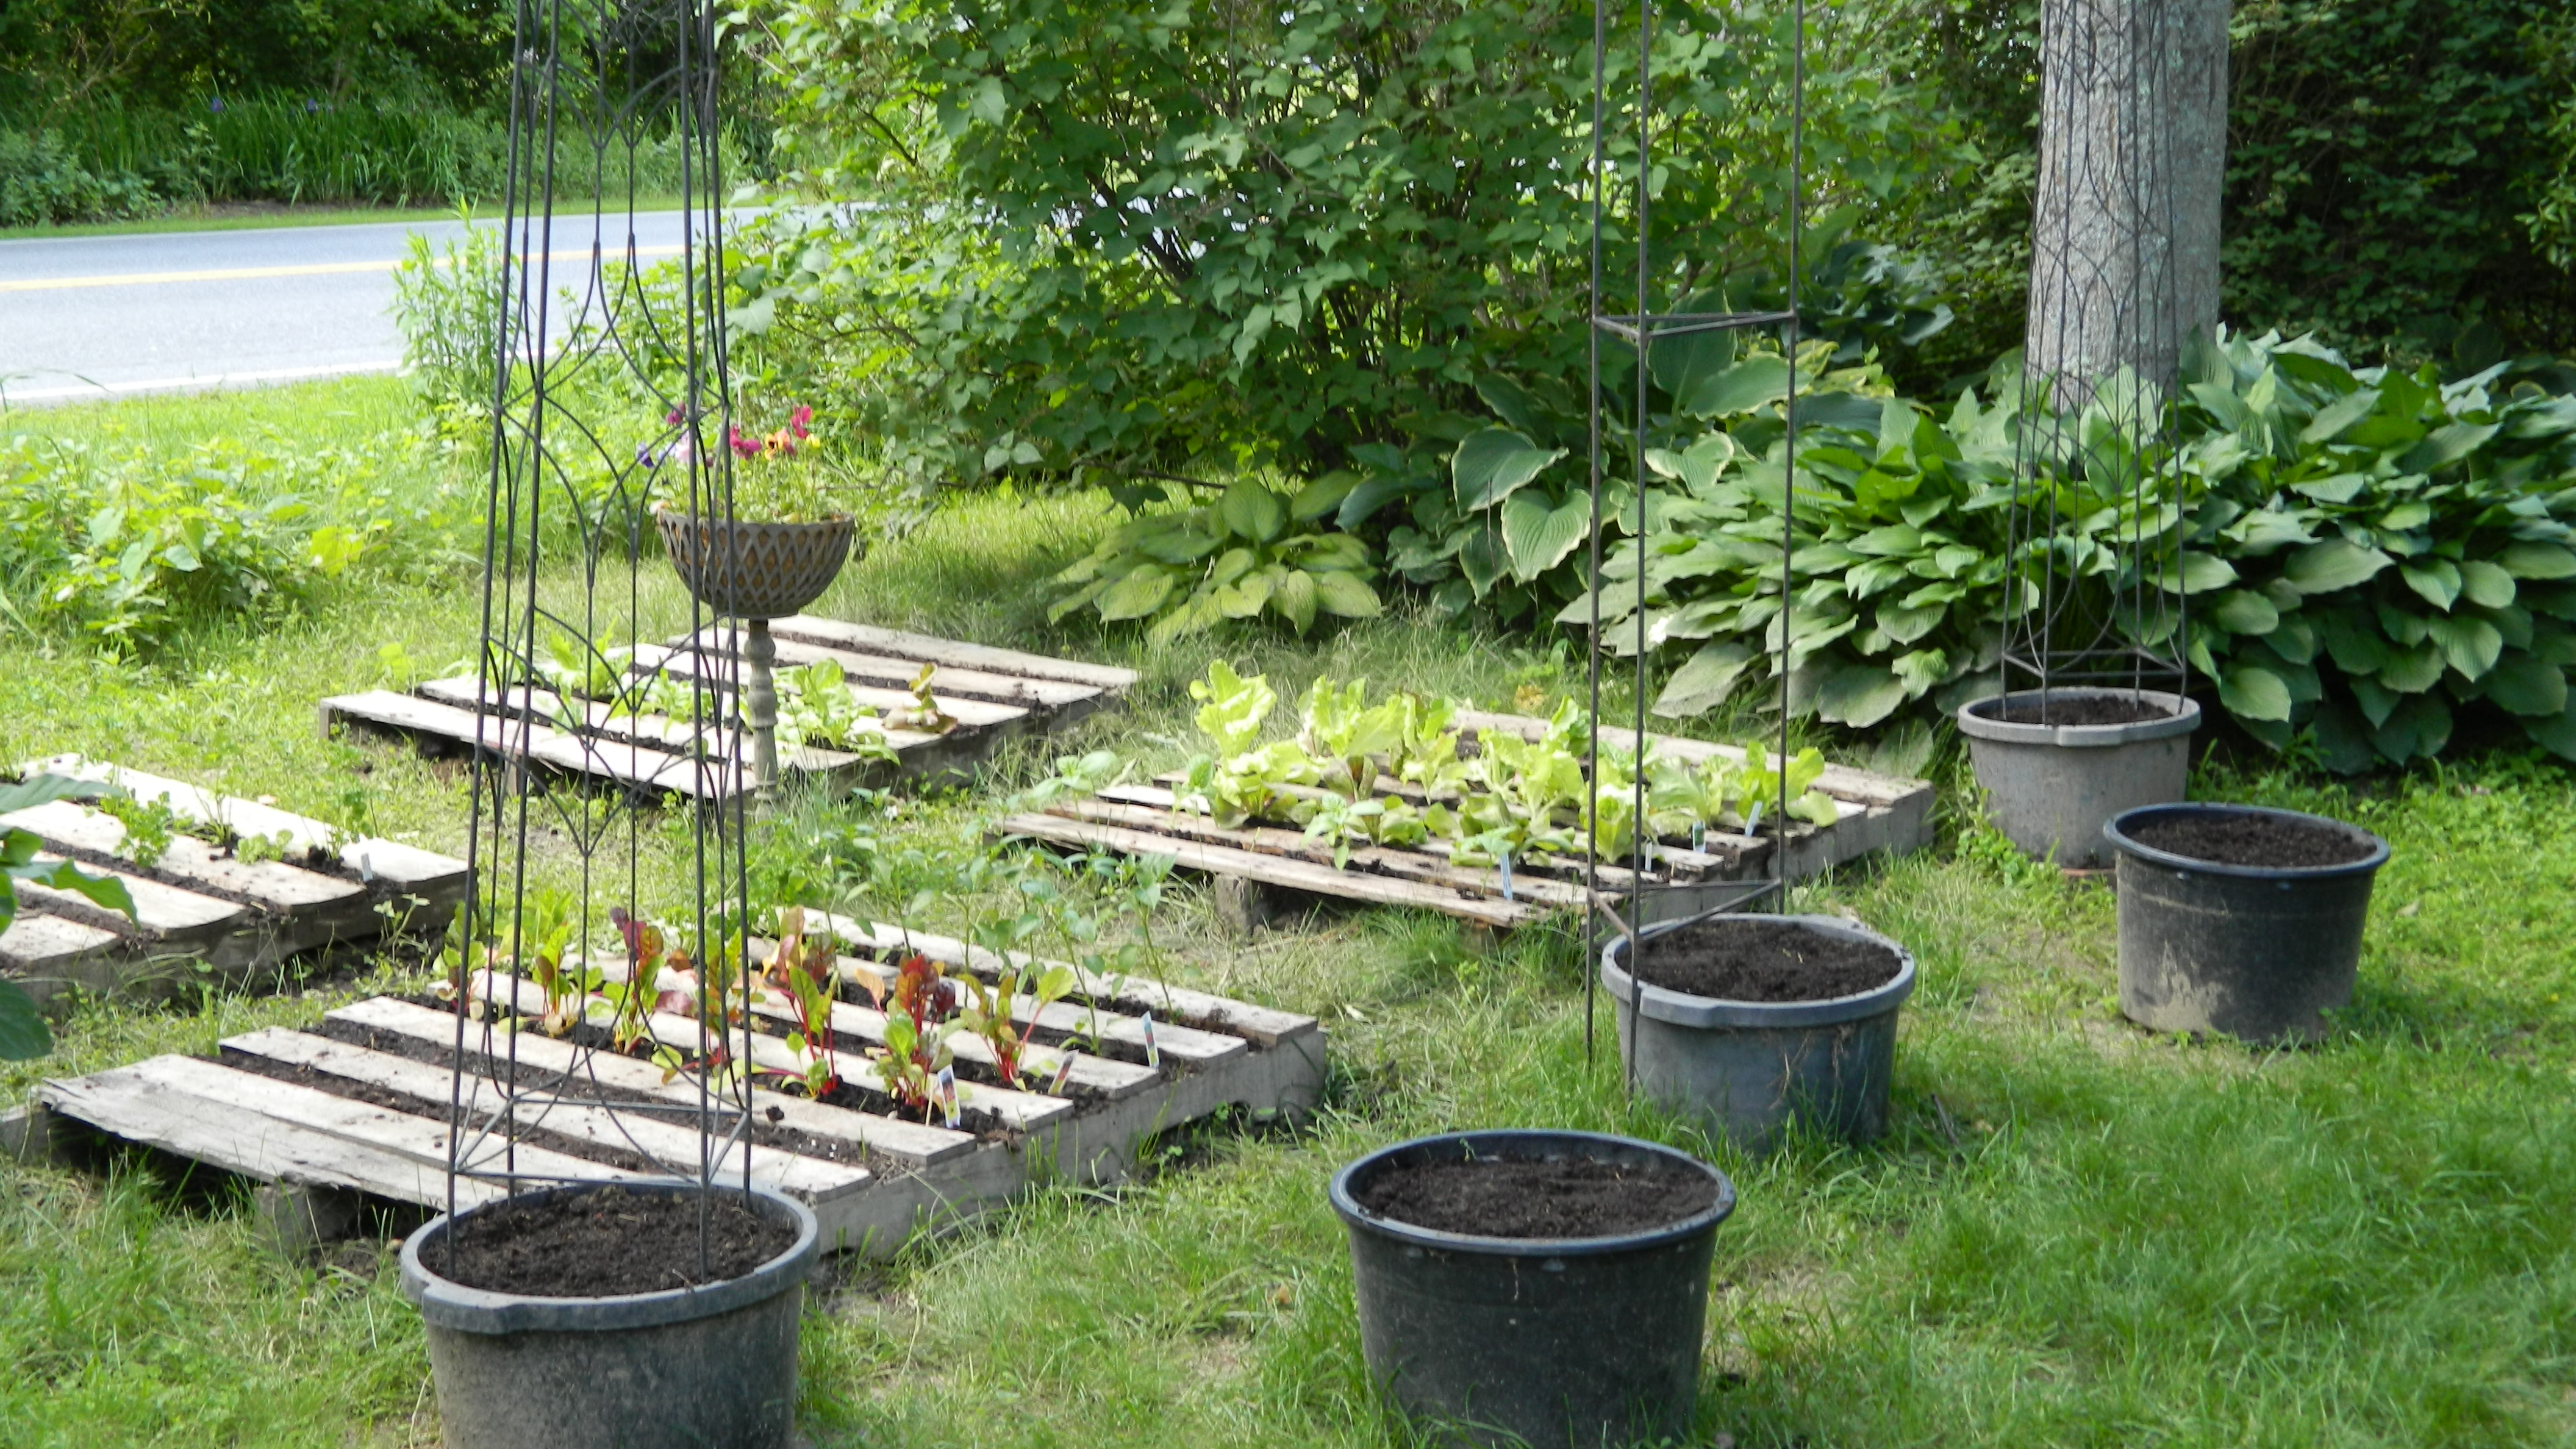 ... Been Planted With Pole Beans, Tomatoes And Cucumbers. We Are Pleased  With This System So Far And Look Forward To Our First Season With A Pallet  Garden.